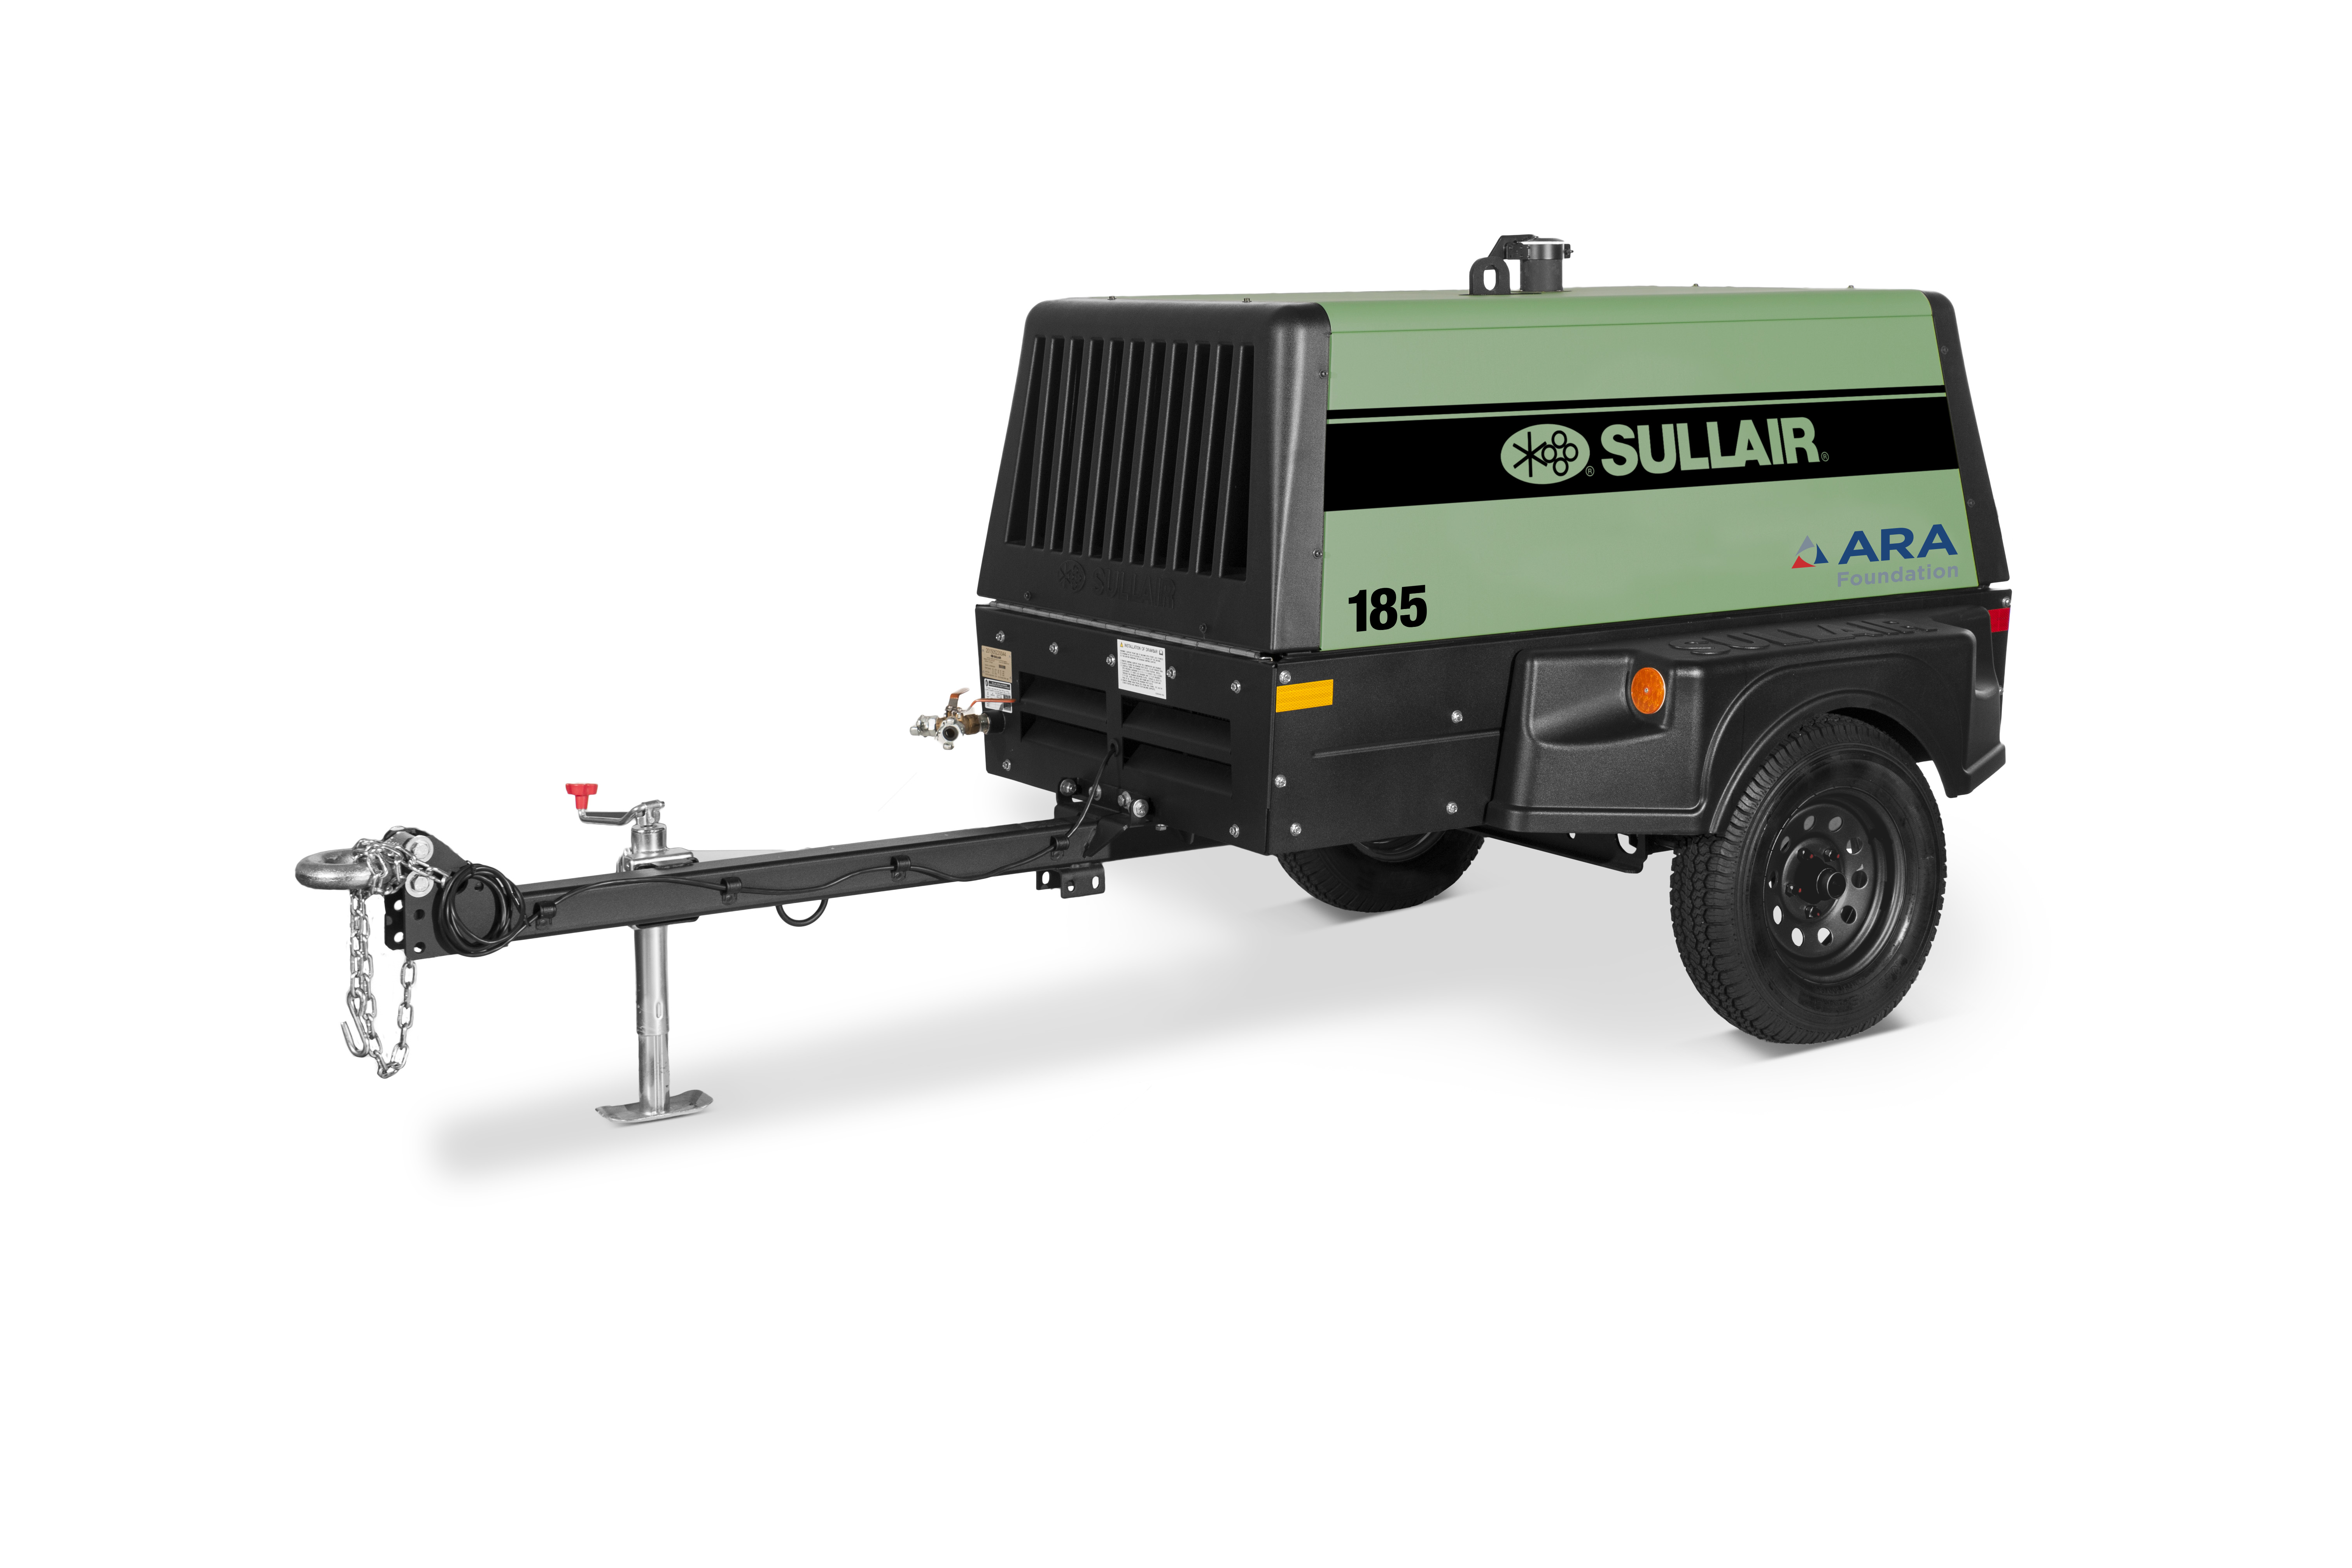 Sullair 185 Tier 4 Final Portable Diesel Air Compressor with ARA Decal